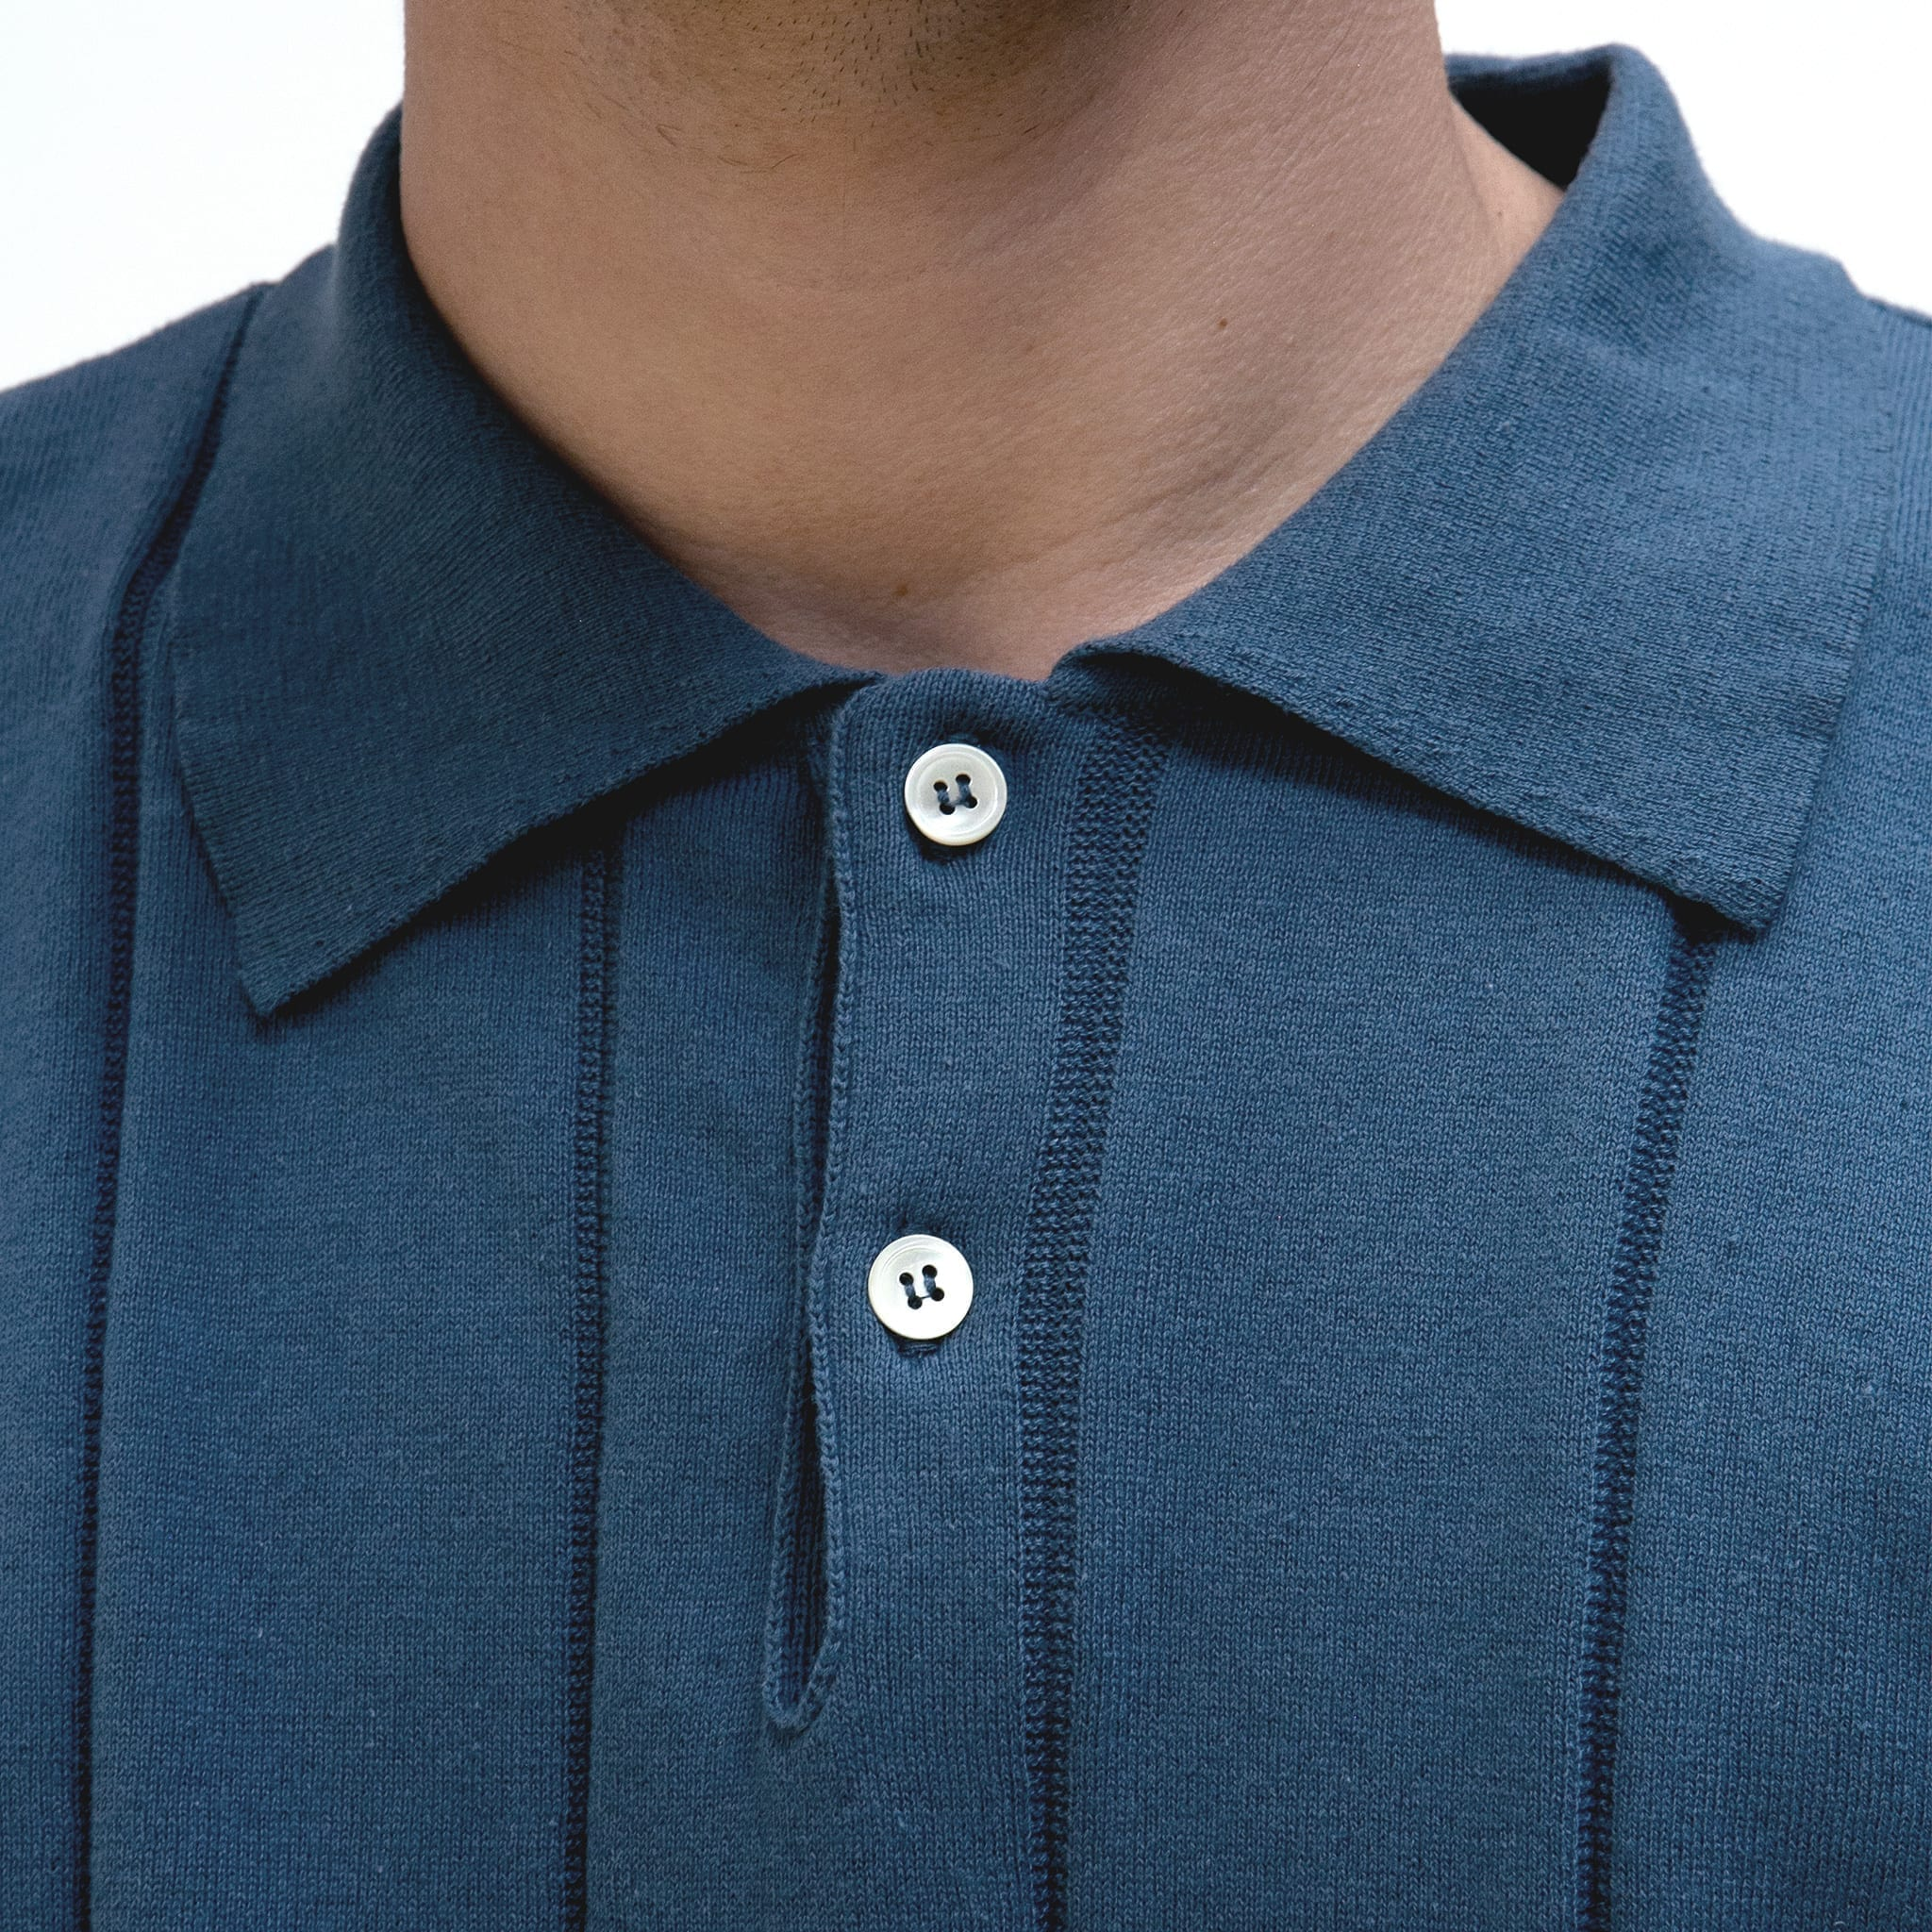 Far Afield Jacobs Short Sleeve Polo a Ensign Blue Organic Cotton FabricMid Century Inspired 3